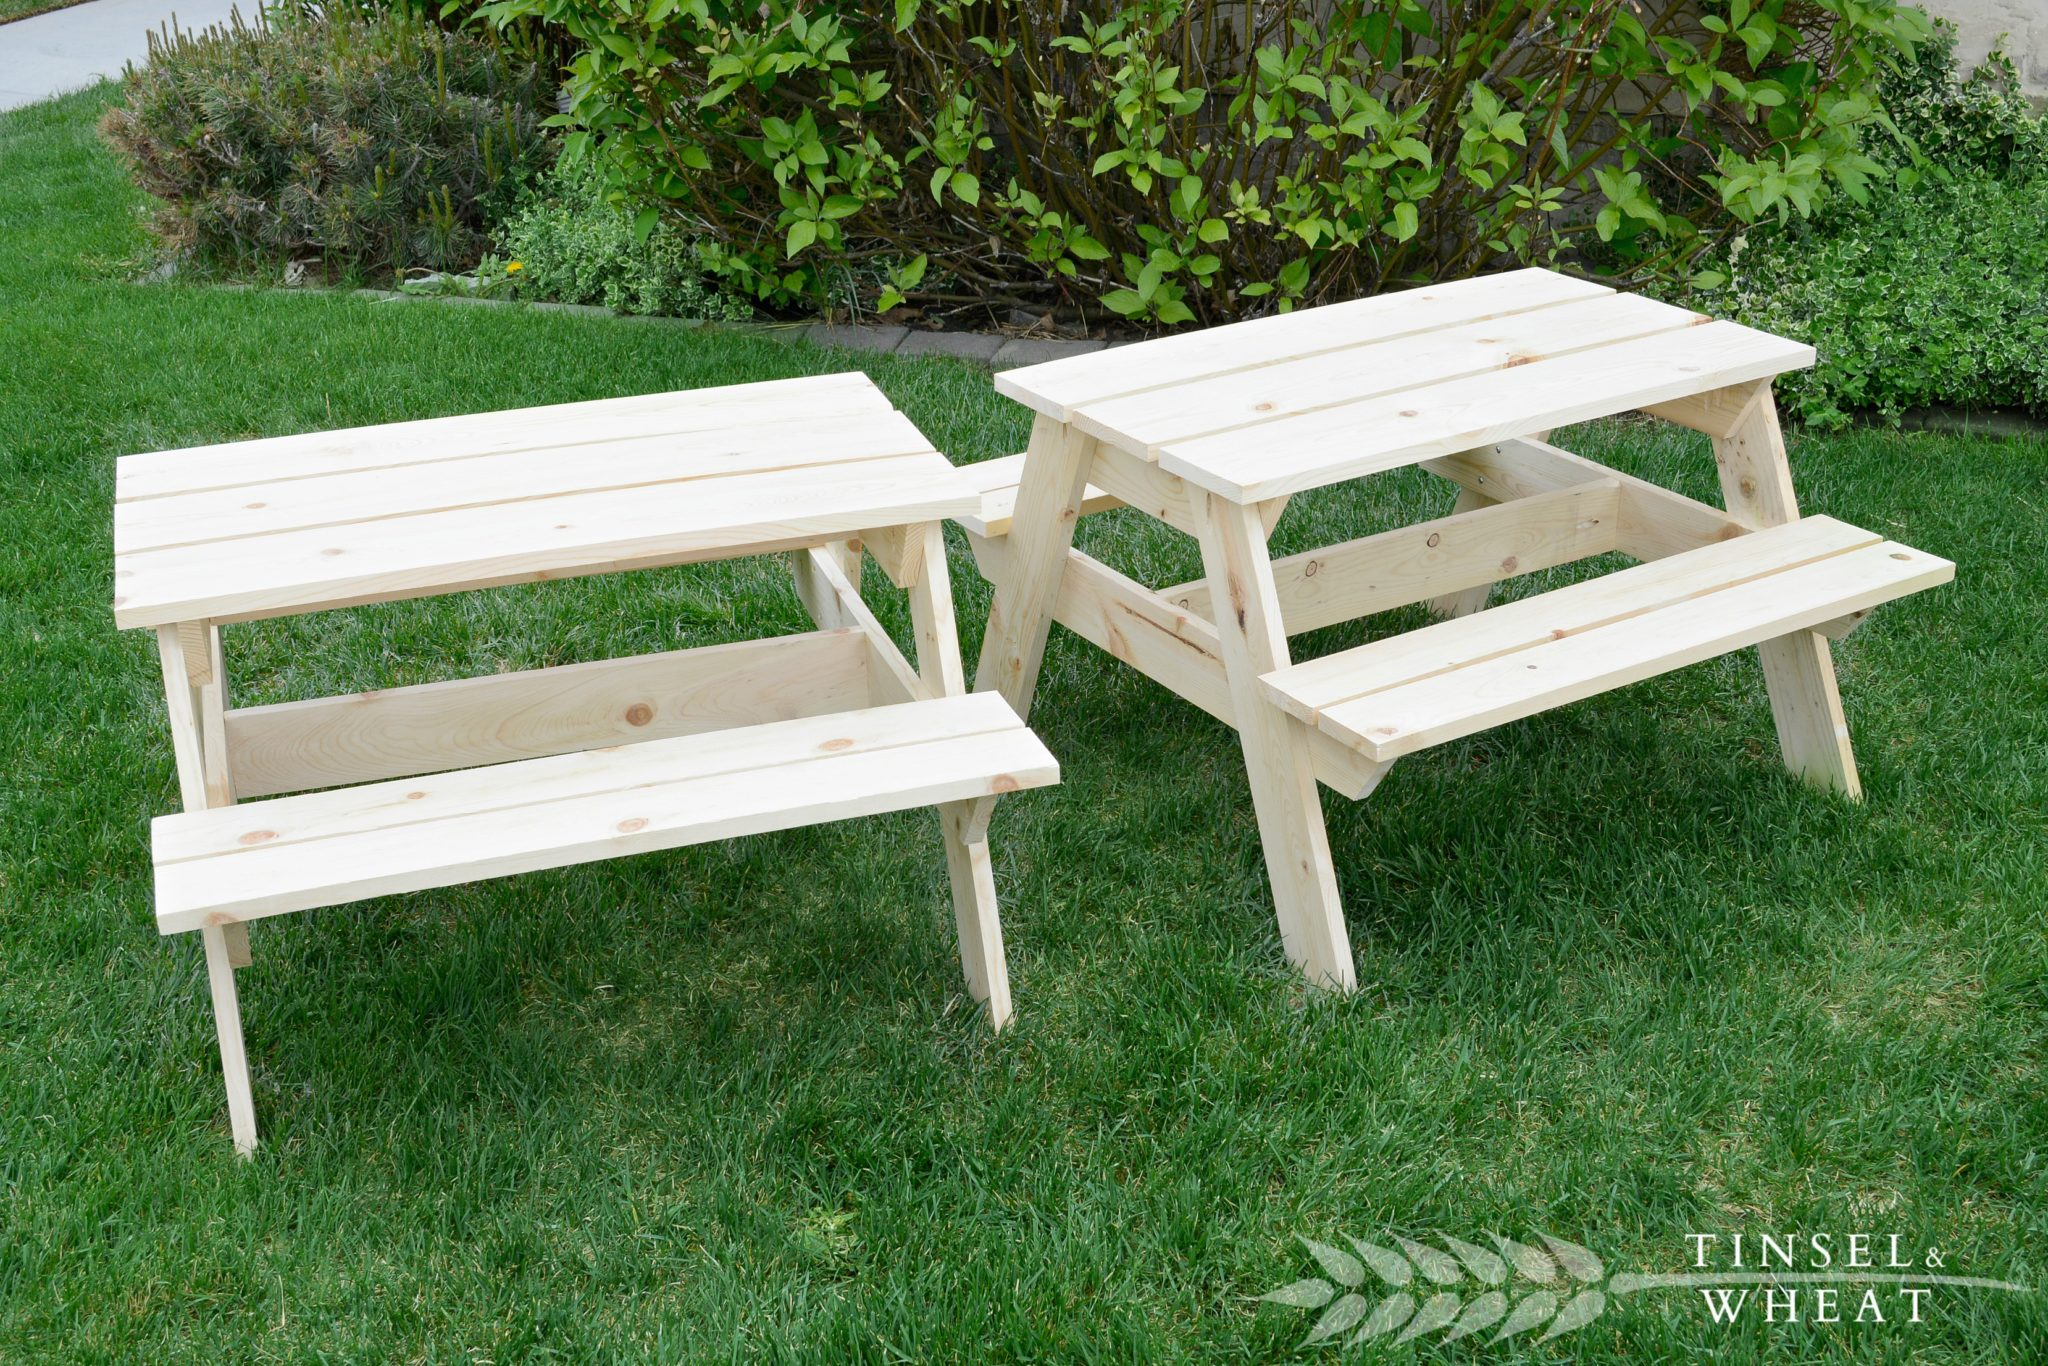 Two Unfinished Picnic Tables by Tinsel & Wheat